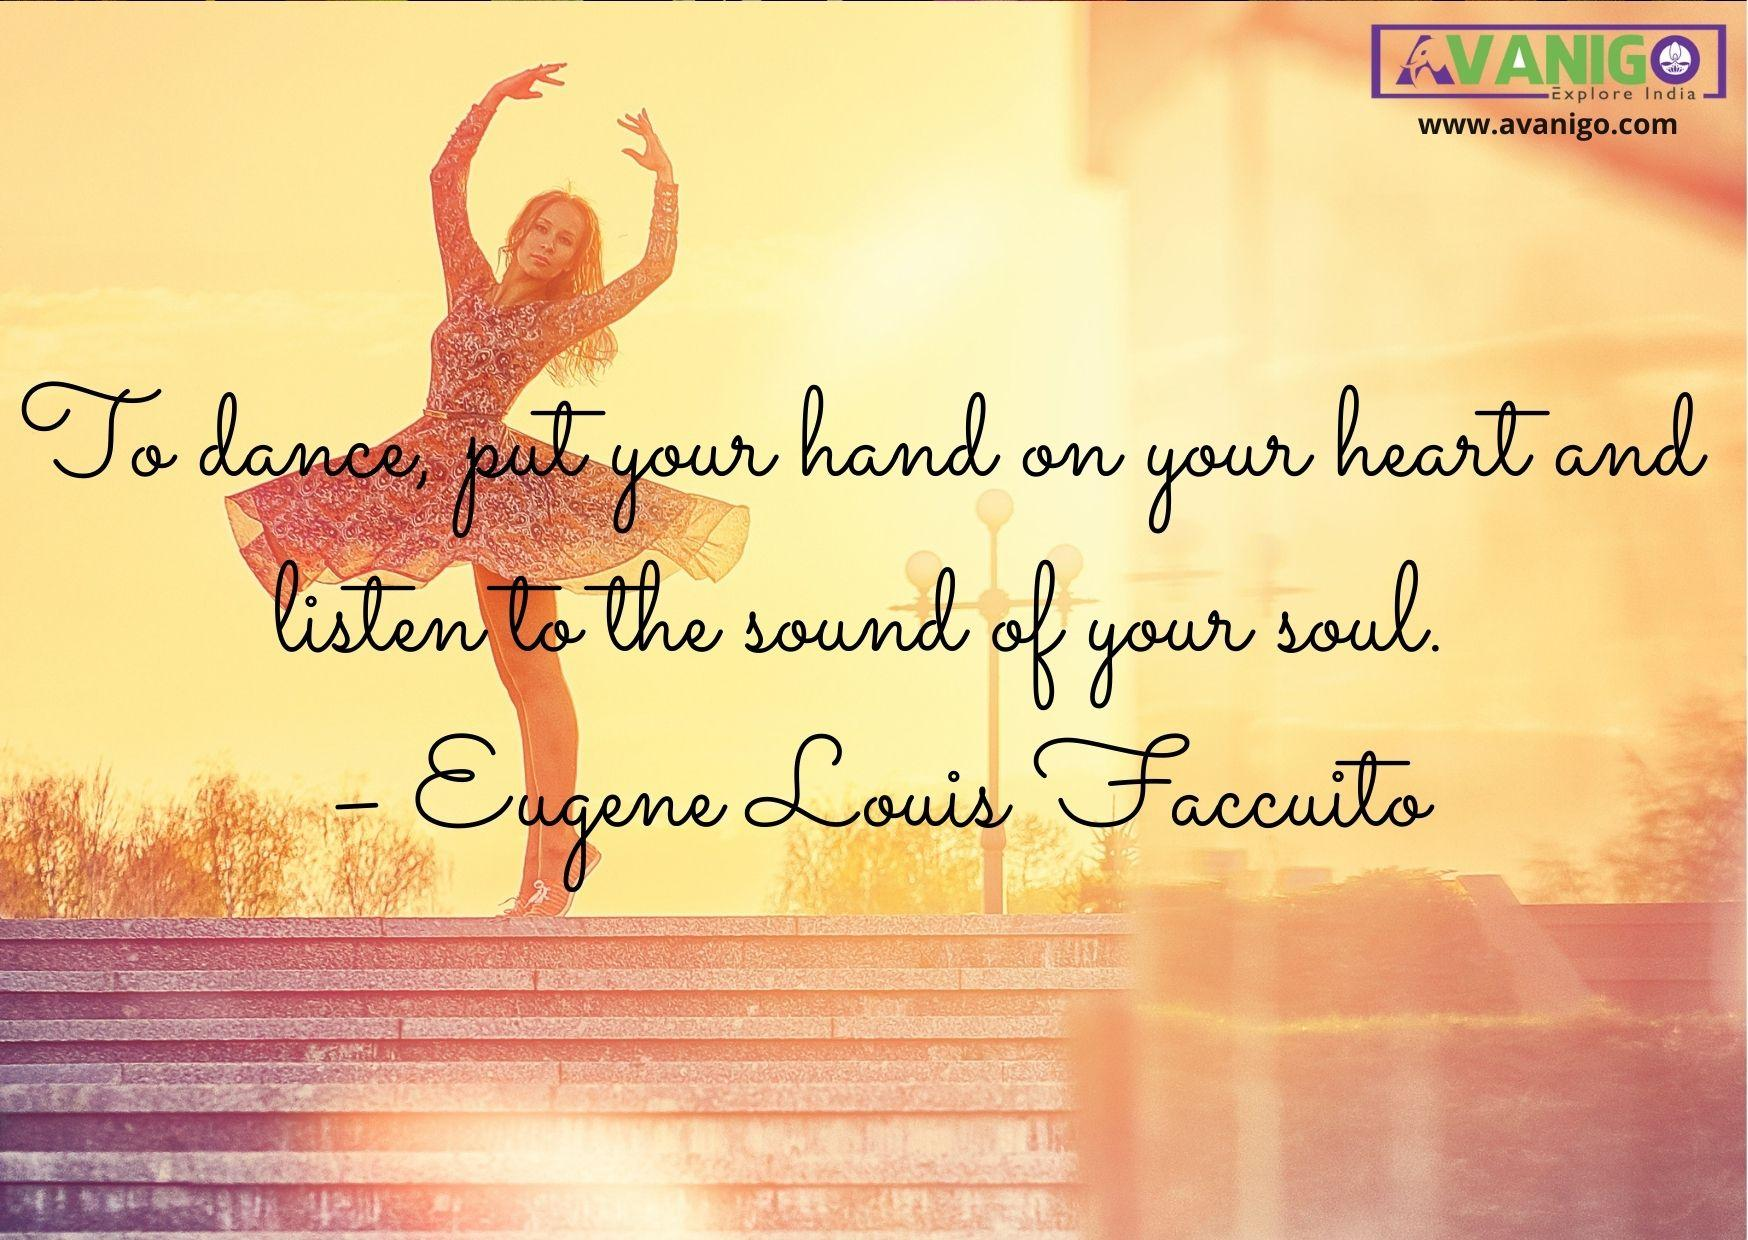 To dance, put your hand on your heart and listen to the sound of your soul.